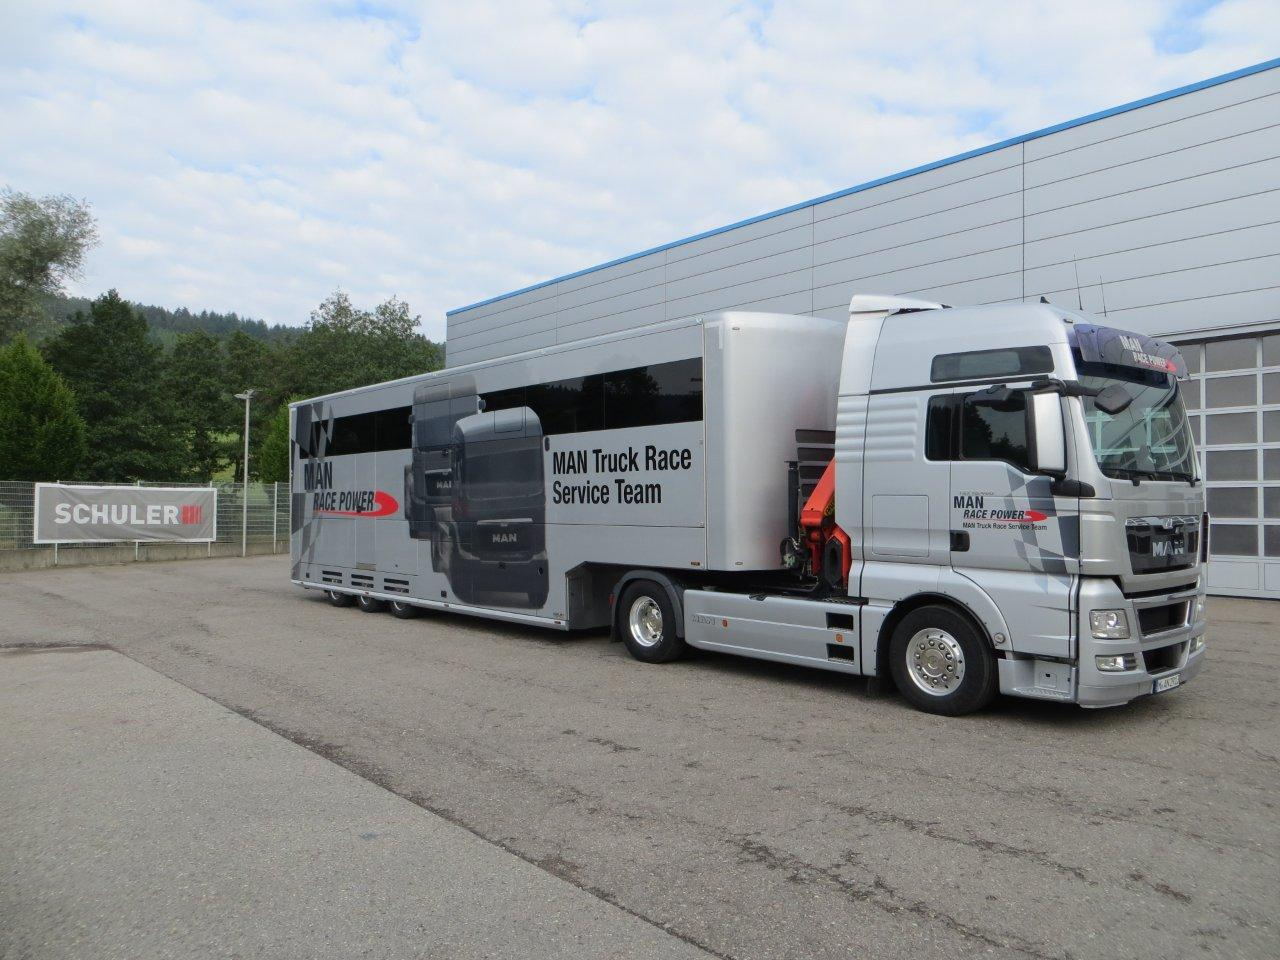 Schuler Delivered Two New Schuler Race Trailers To The Man